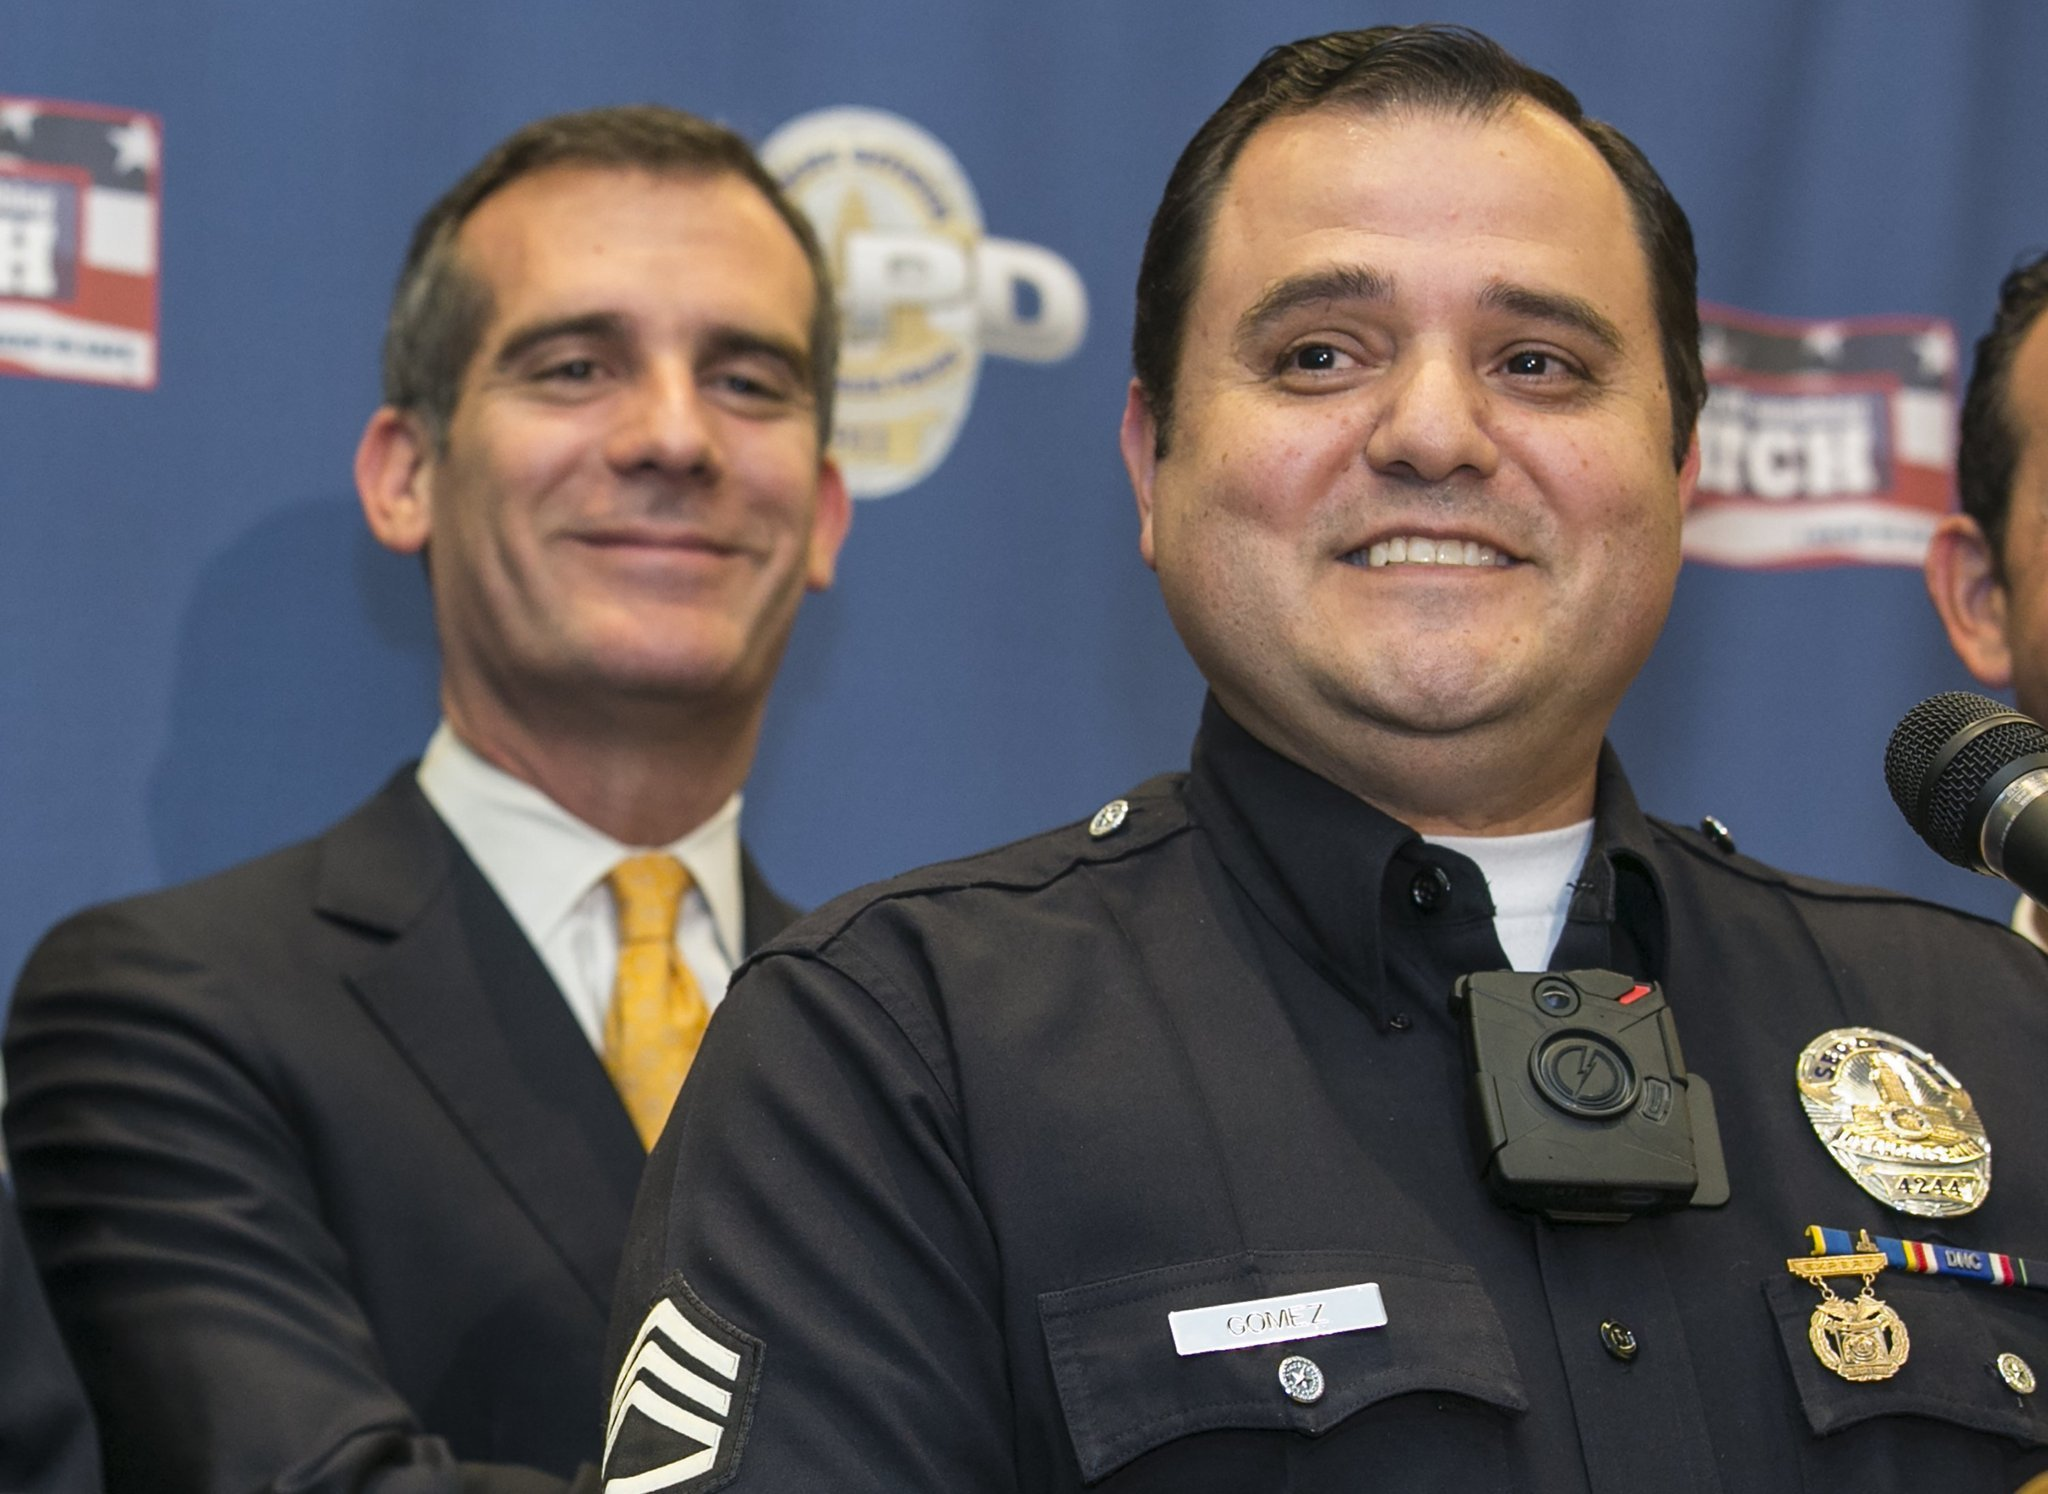 L.A. Police Sgt. Dan Gomez, right, wears an on-body video camera as he takes questions about the technology at a news conference. (Damian Dovarganes / Associated Press)